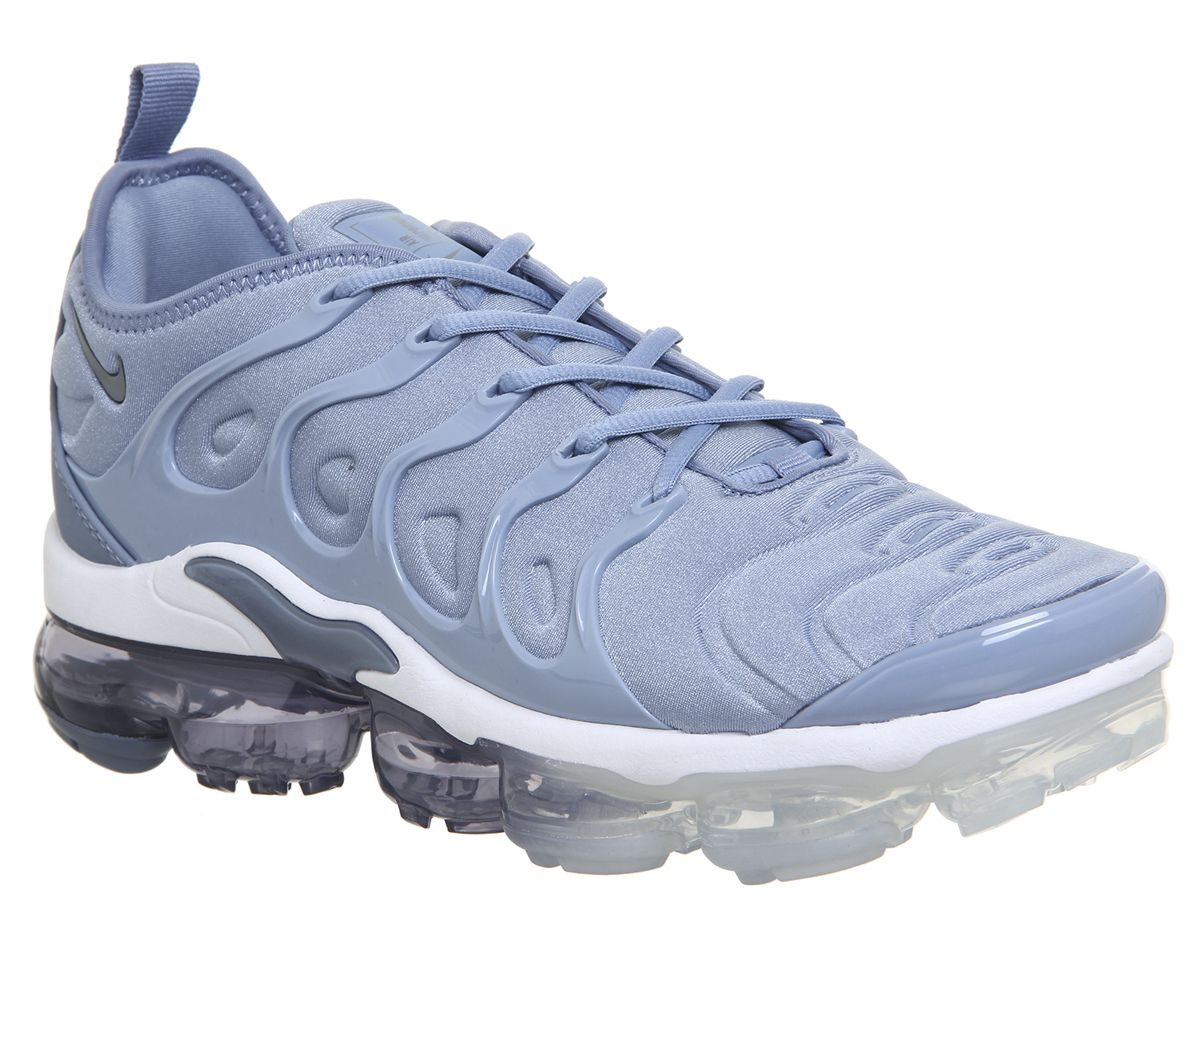 competitive price 007cc fd135 Air Vapormax Plus Trainers